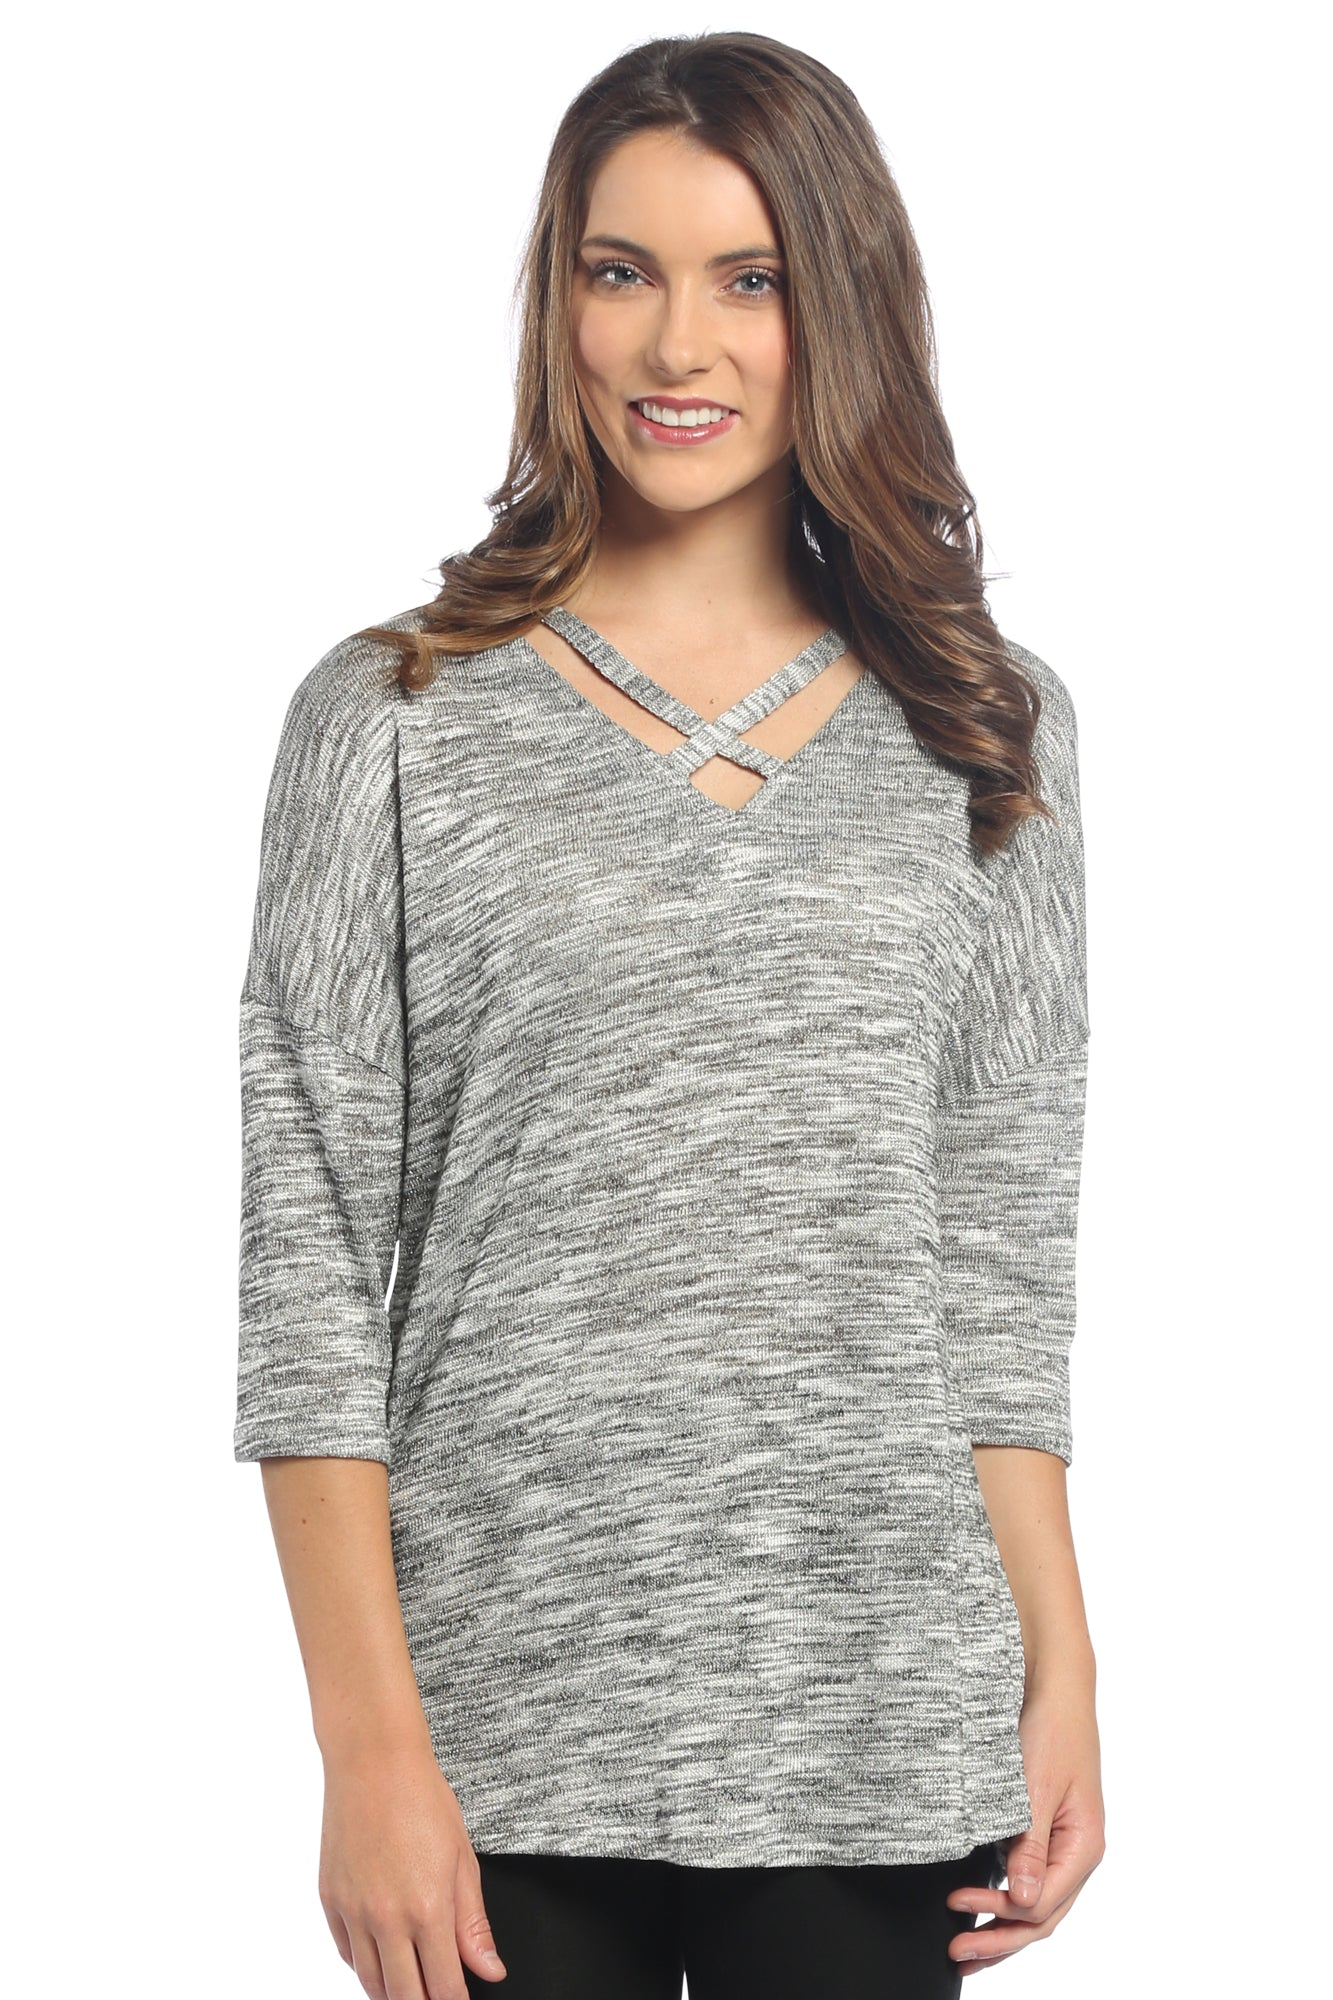 Metallic Criss Cross Neckline Top in Silver